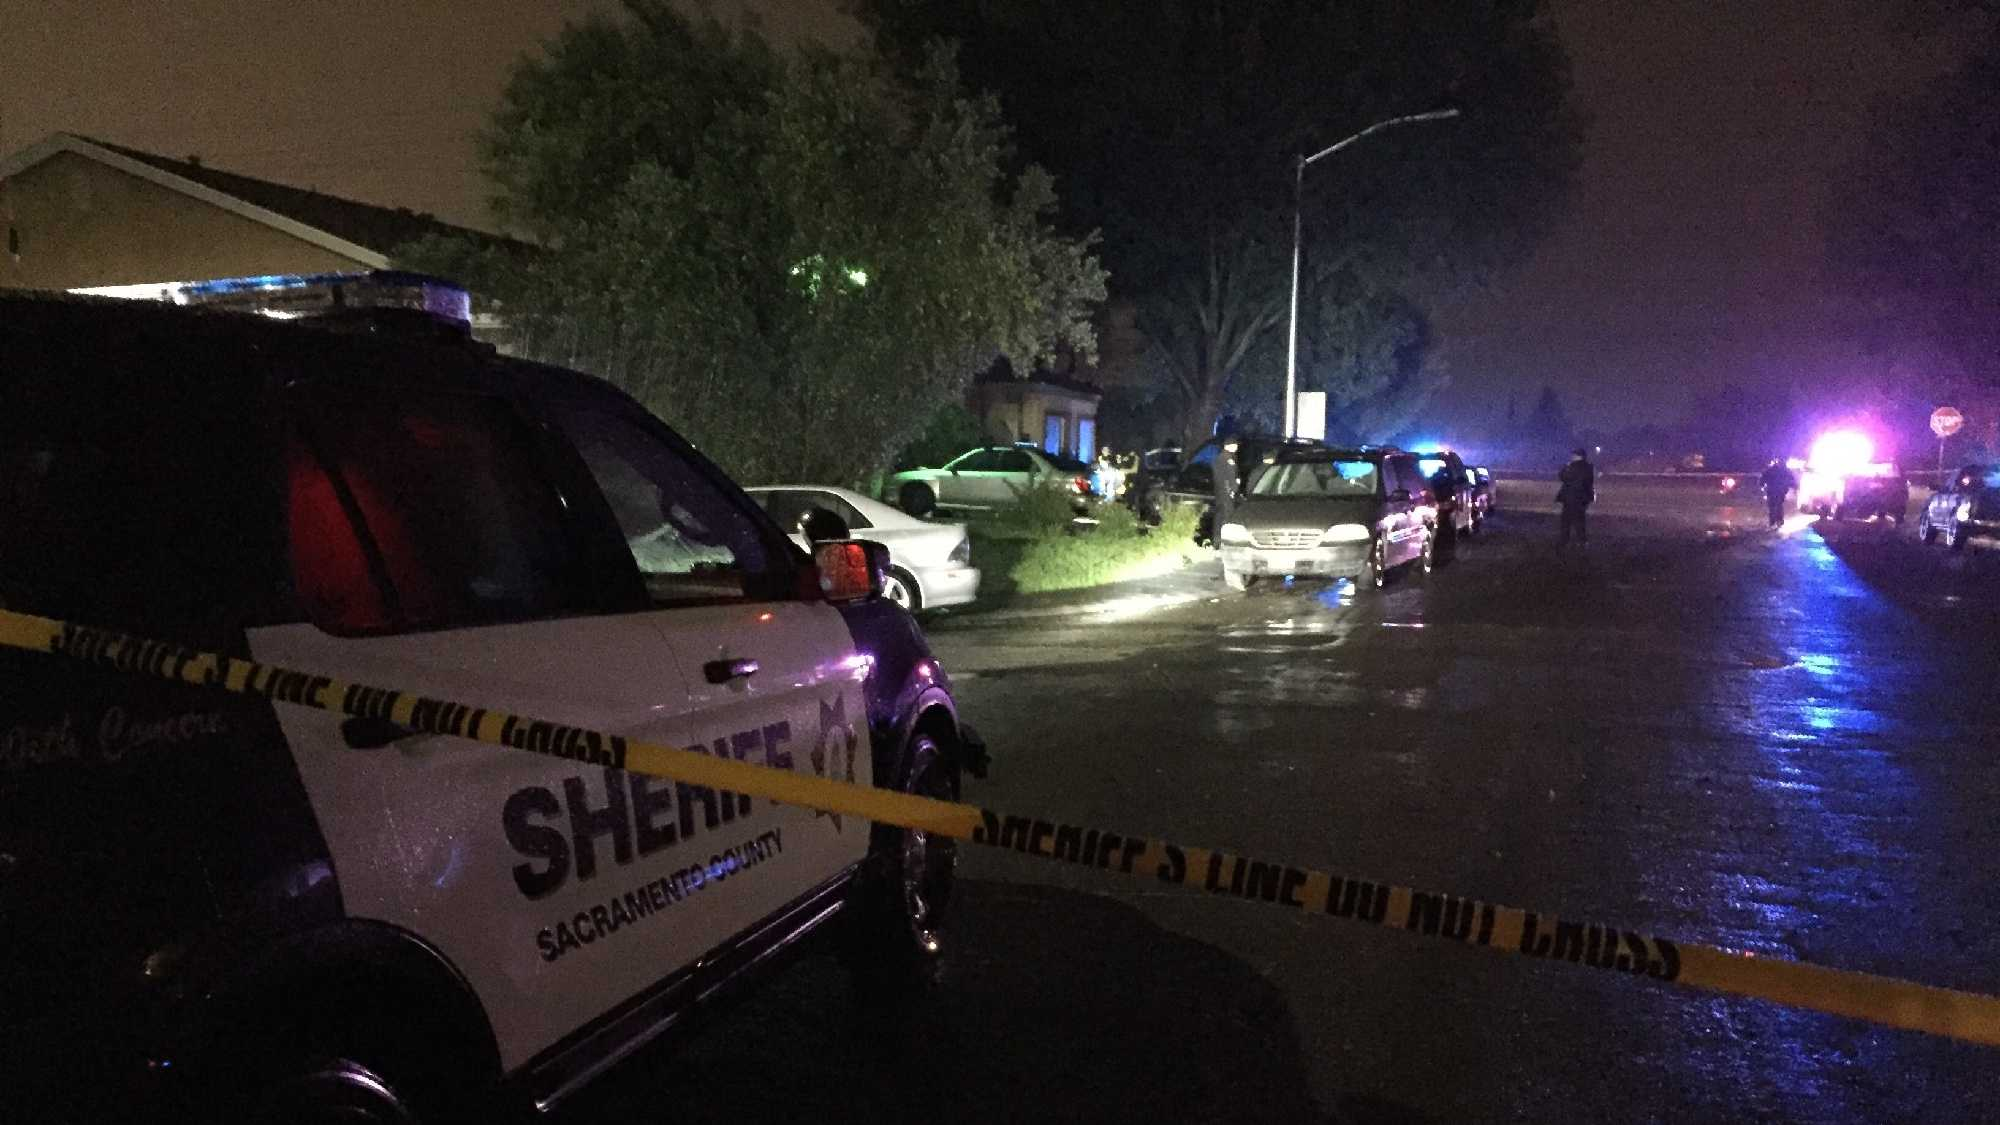 Two men were found shot in a South Sacramento home's front yard on the 8000 block of Blackhawk Drive Saturday evening.